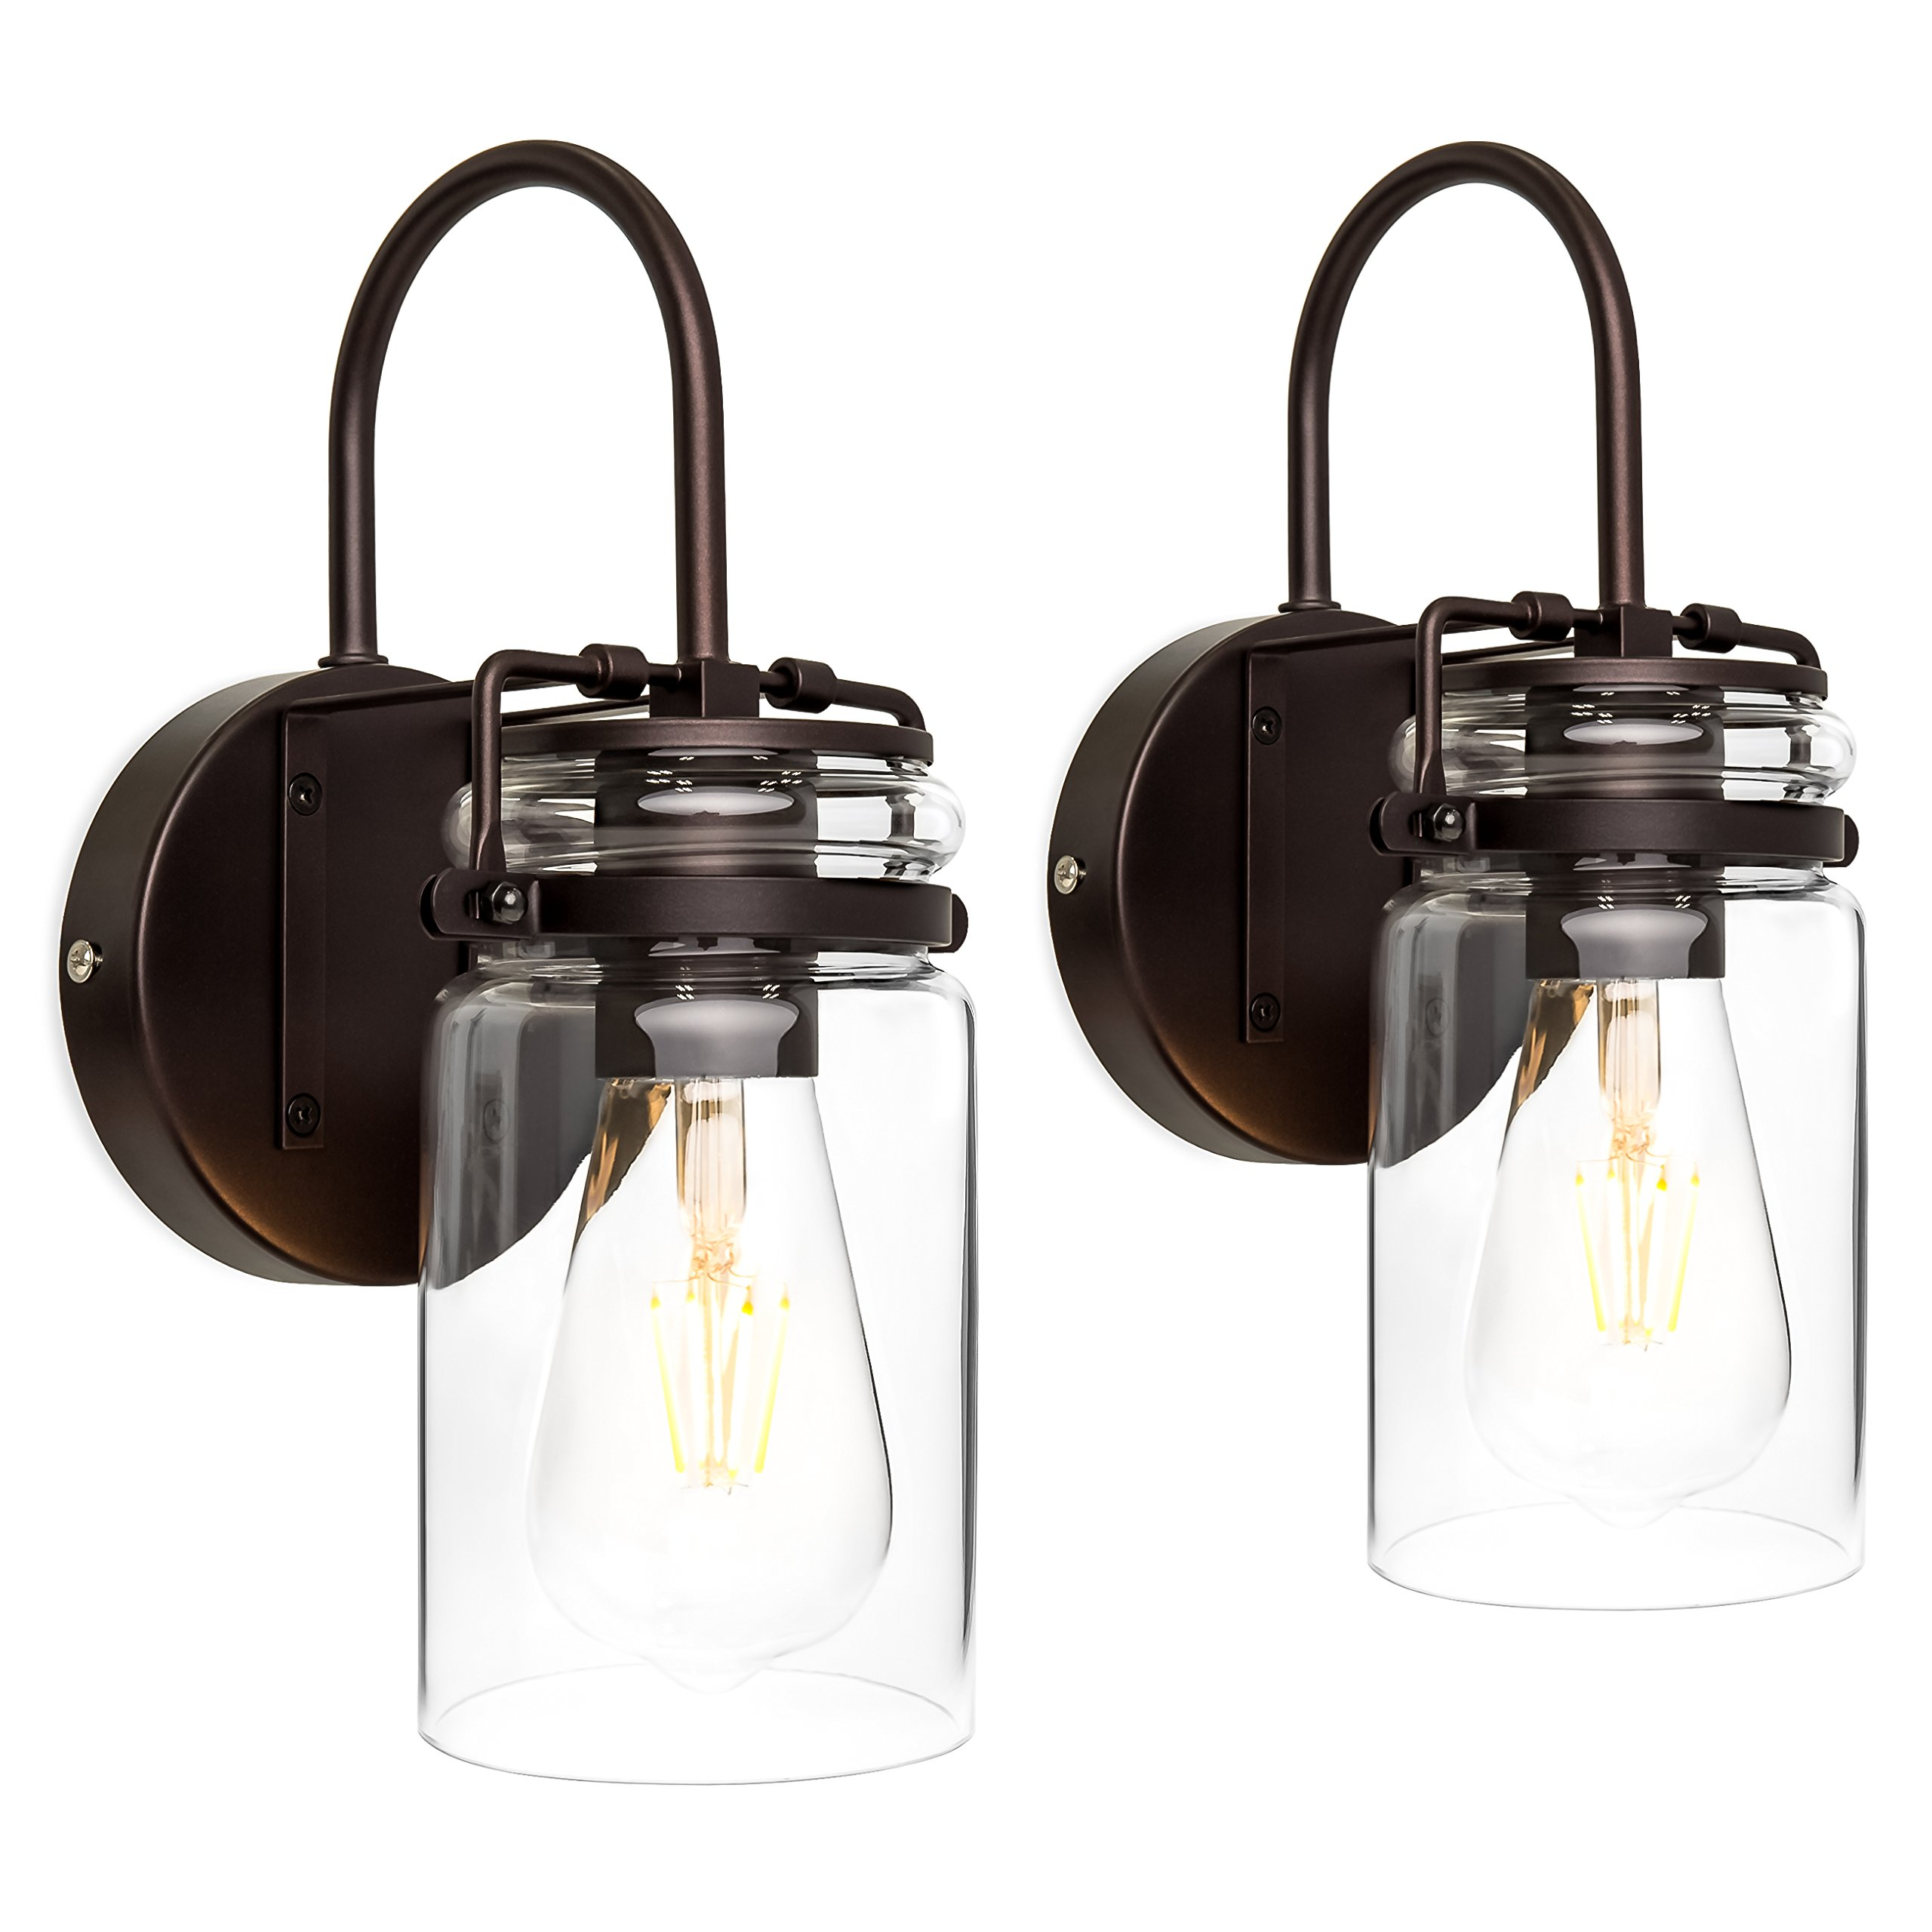 Best Choice Products Set of 2 Industrial Metal Hardwire Wall Light Lamp Sconces w/Clear Glass Jar Shade - Bronze